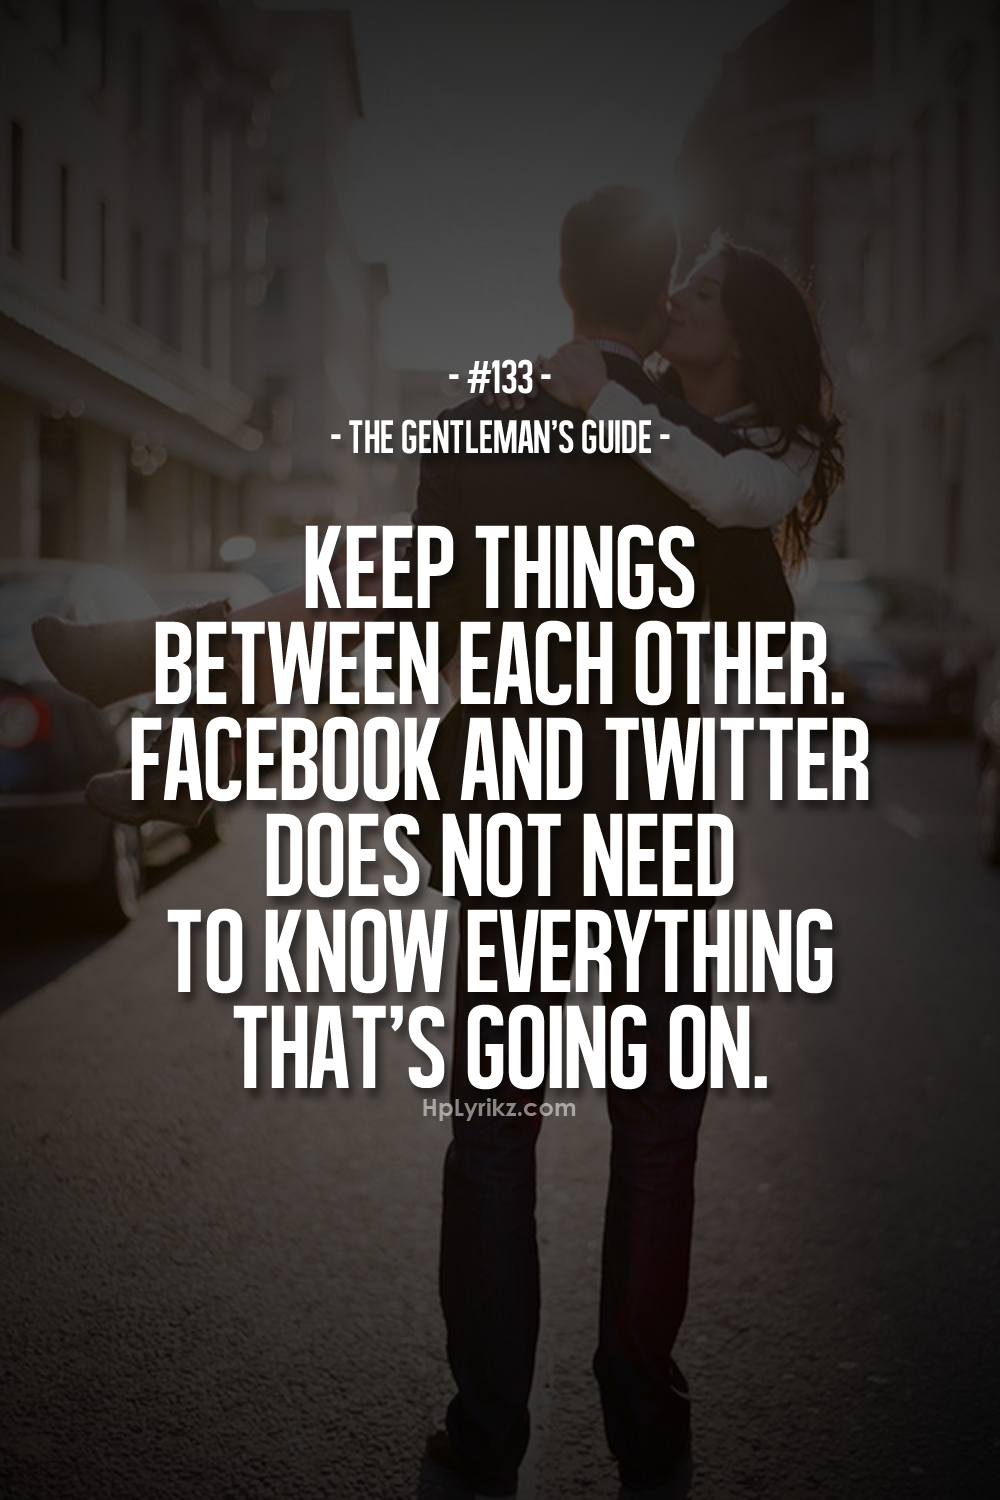 Quotes About Love Tumblr 2015 : Keep things between each other.Facebook and Twitter does not need to ...